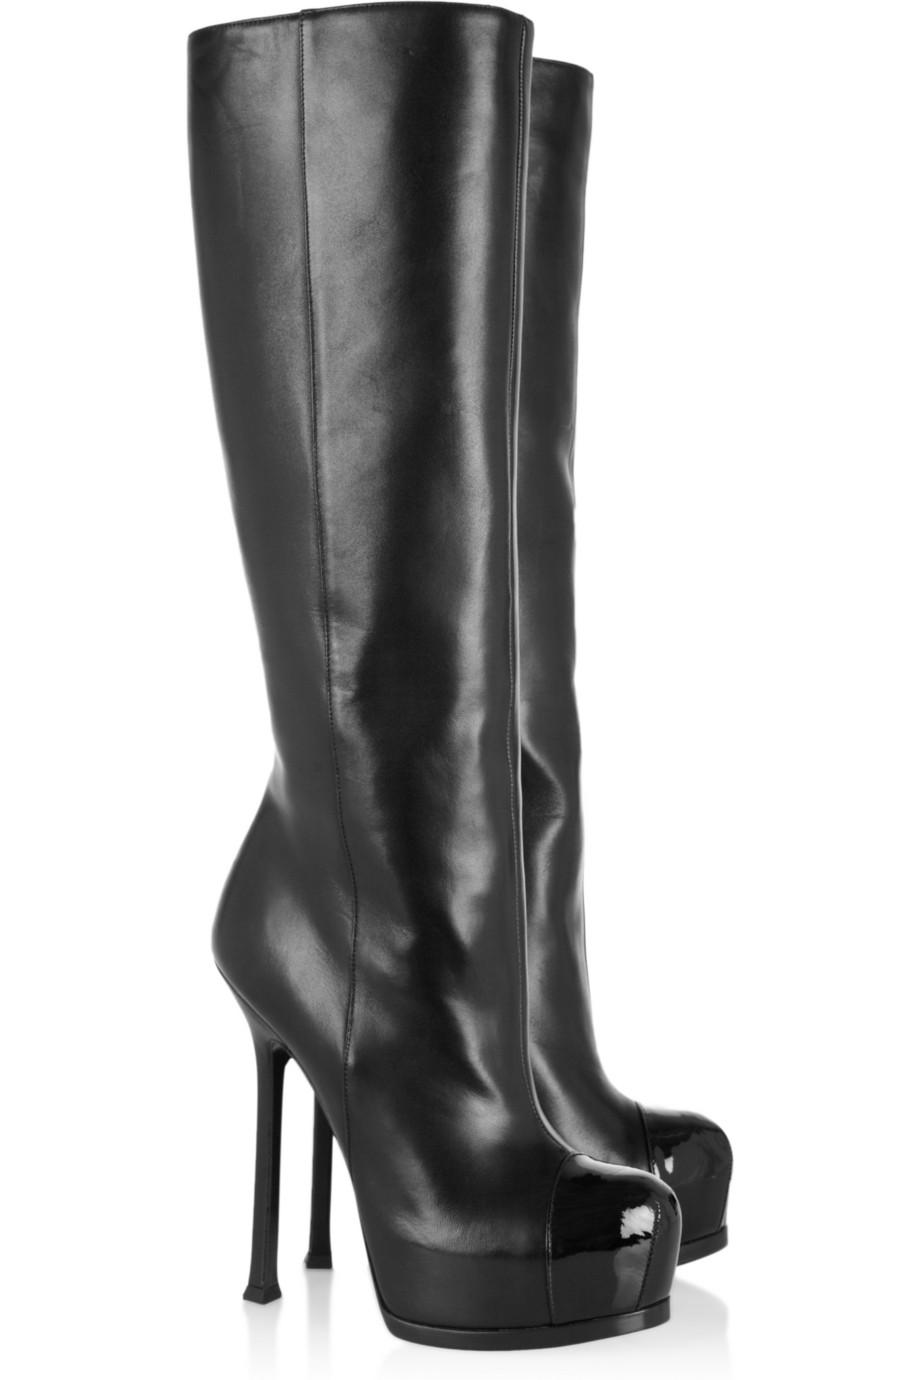 Black Knee High Boots For Women Platform Patent Round Toes Boots ...